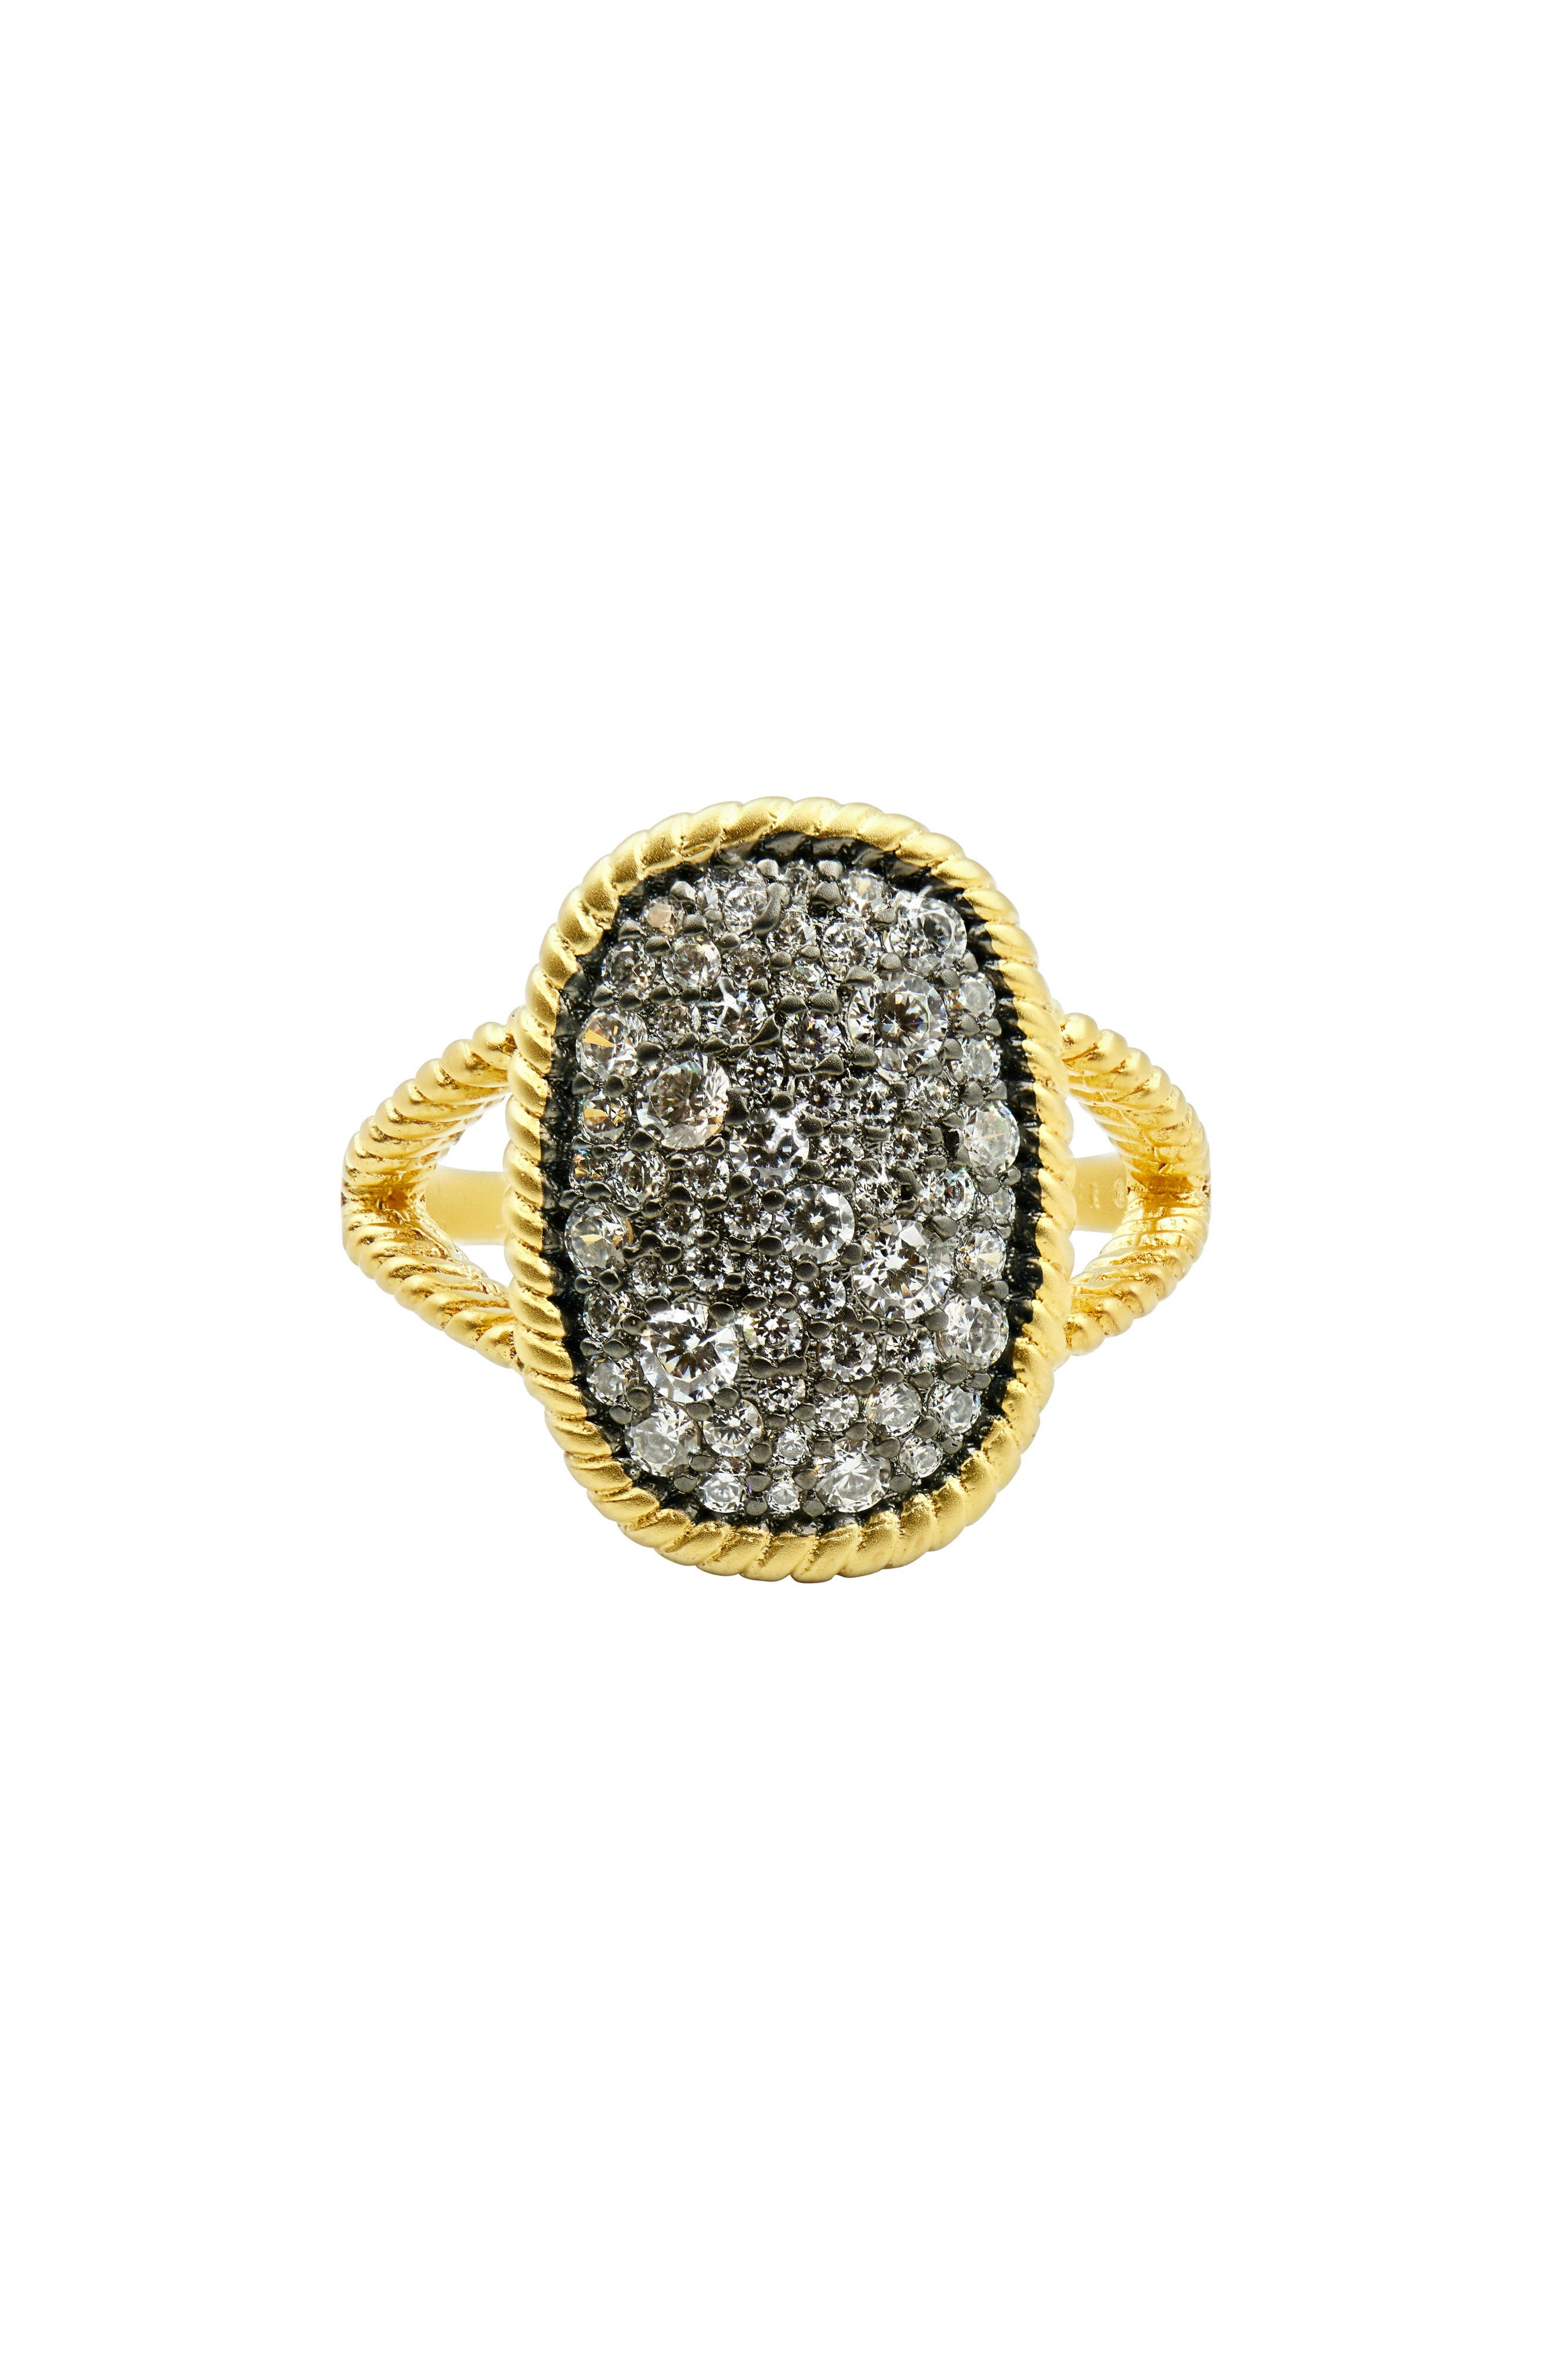 Gilded Cable Large Pavé Cocktail Ring,                             Main thumbnail 1, color,                             710